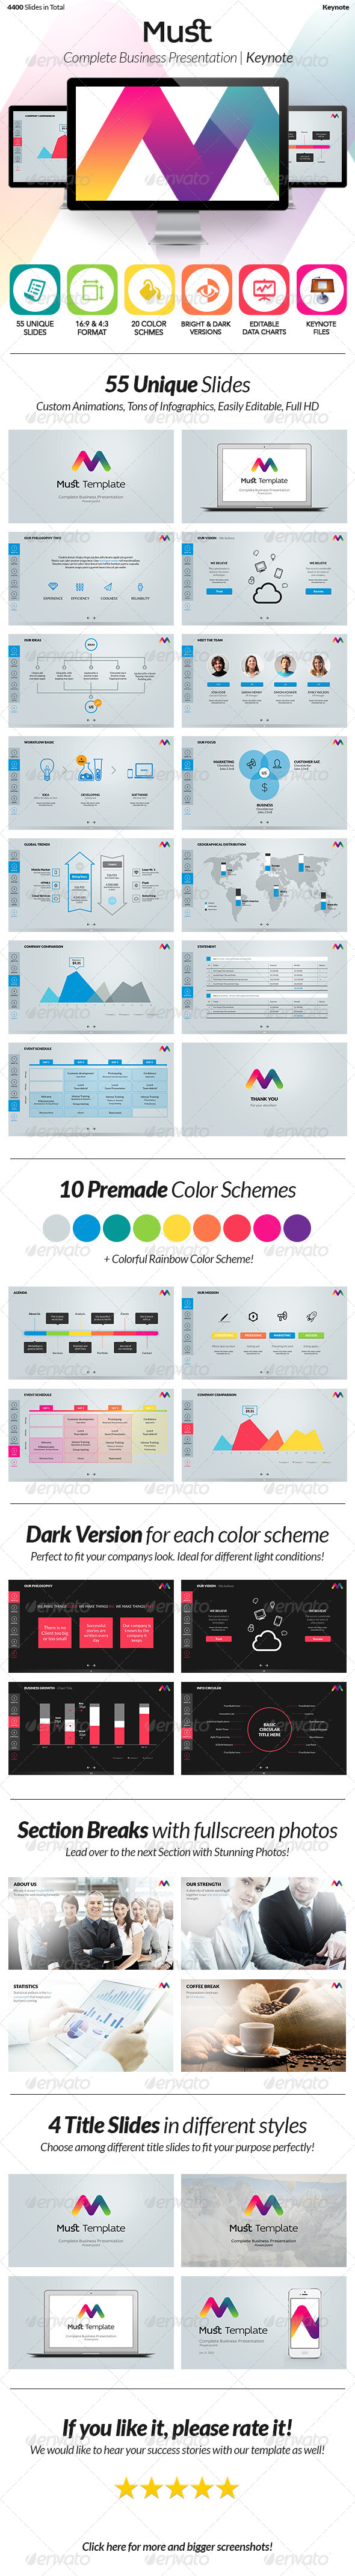 GraphicRiver Must Keynote Complete Business Template 5890097